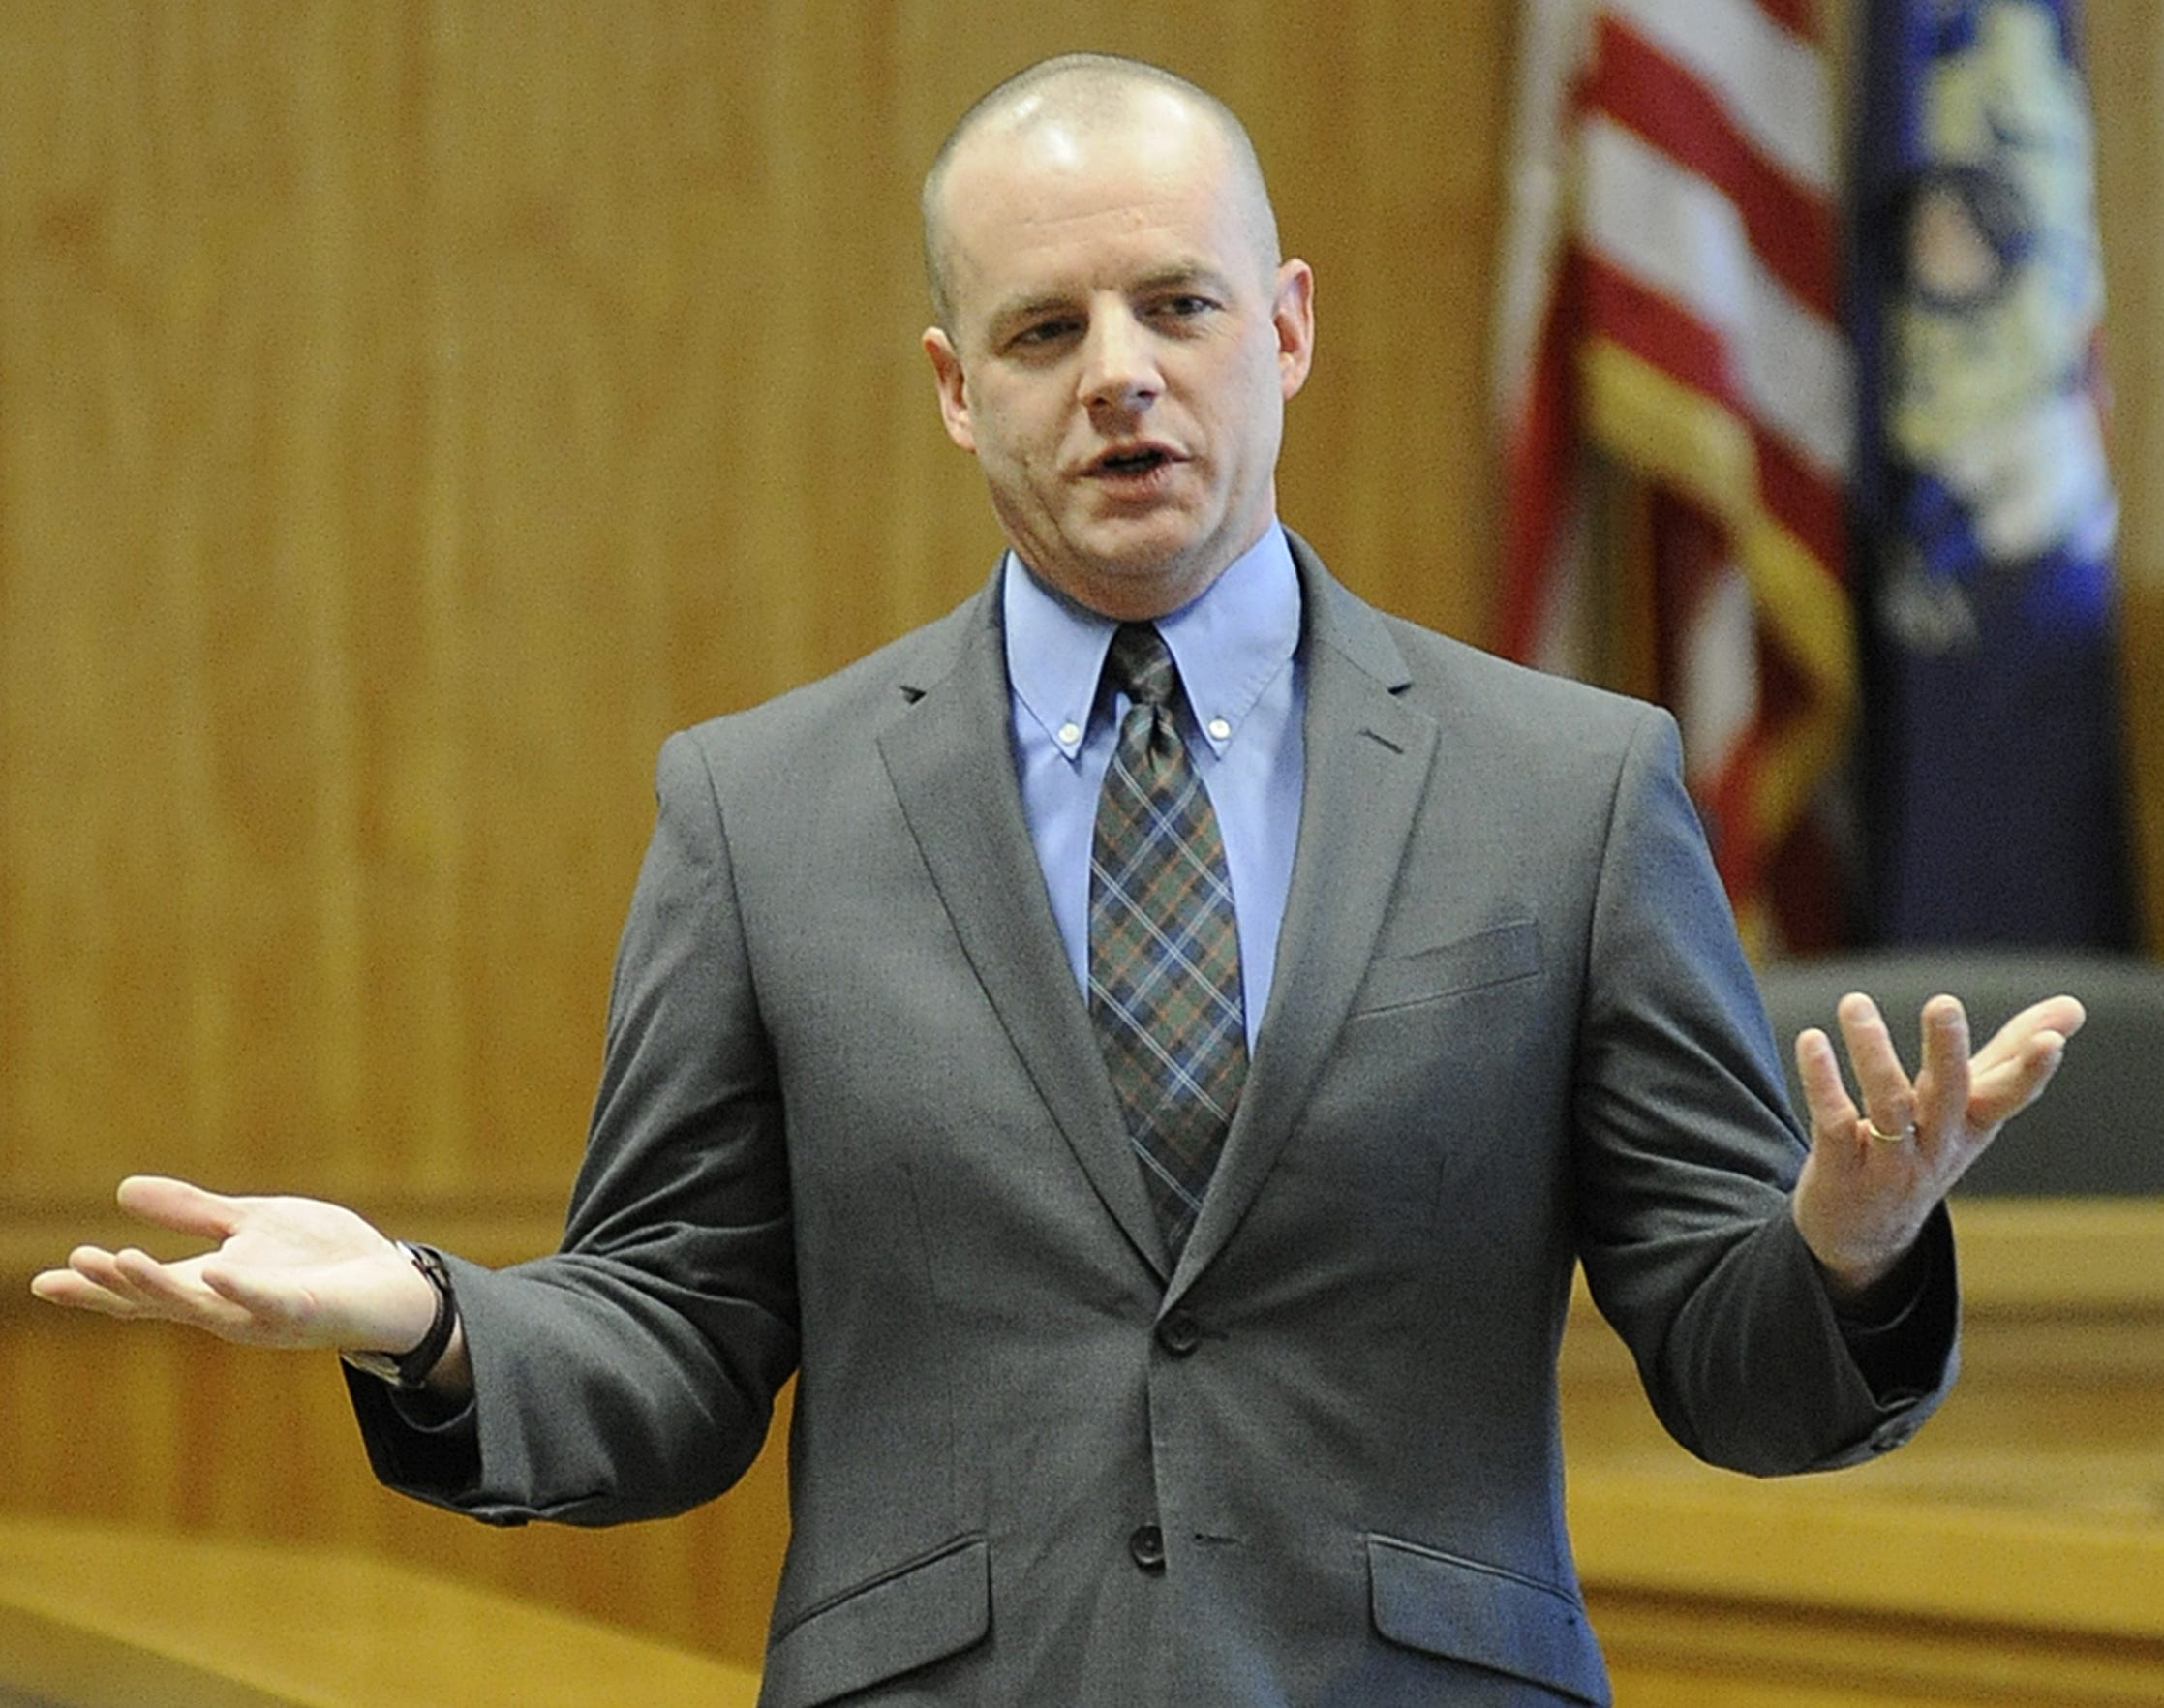 Wood County District Attorney Craig Lambert speaks after a ceremony swearing him into office on Jan. 7,2012.